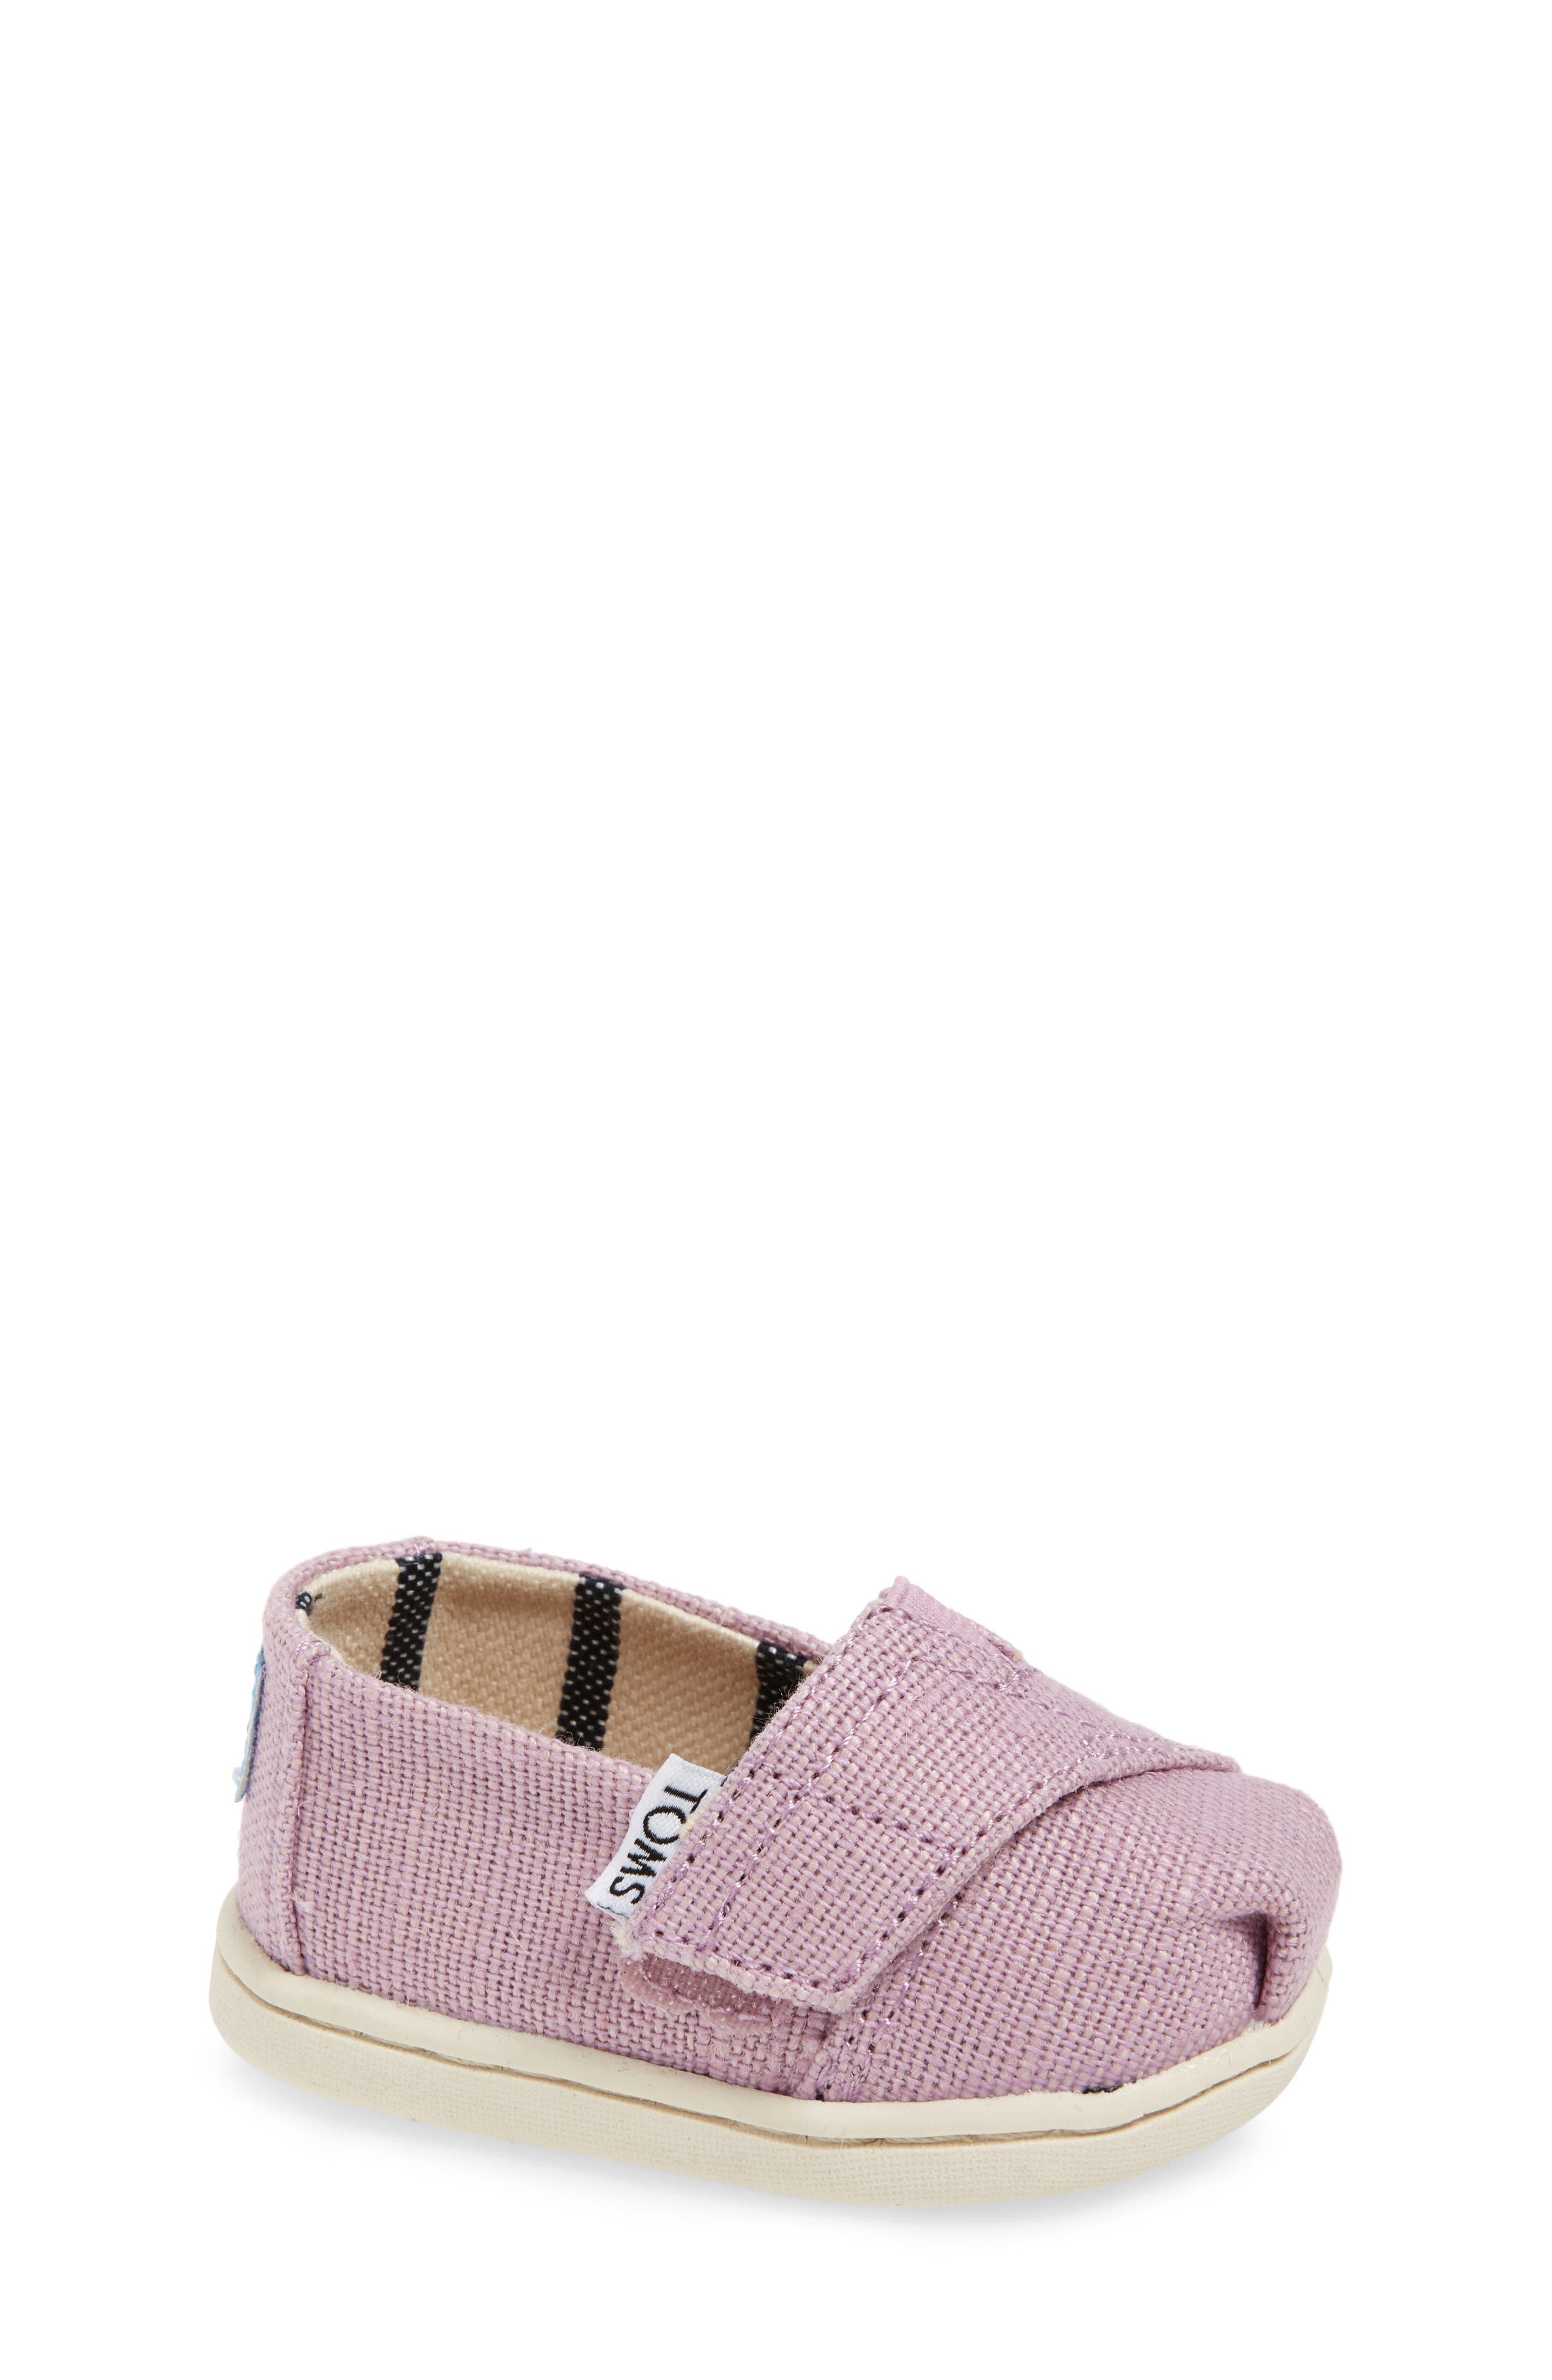 Heritage Canvas Slip-On,                             Main thumbnail 1, color,                             SOFT LILAC HERITAGE CANVAS